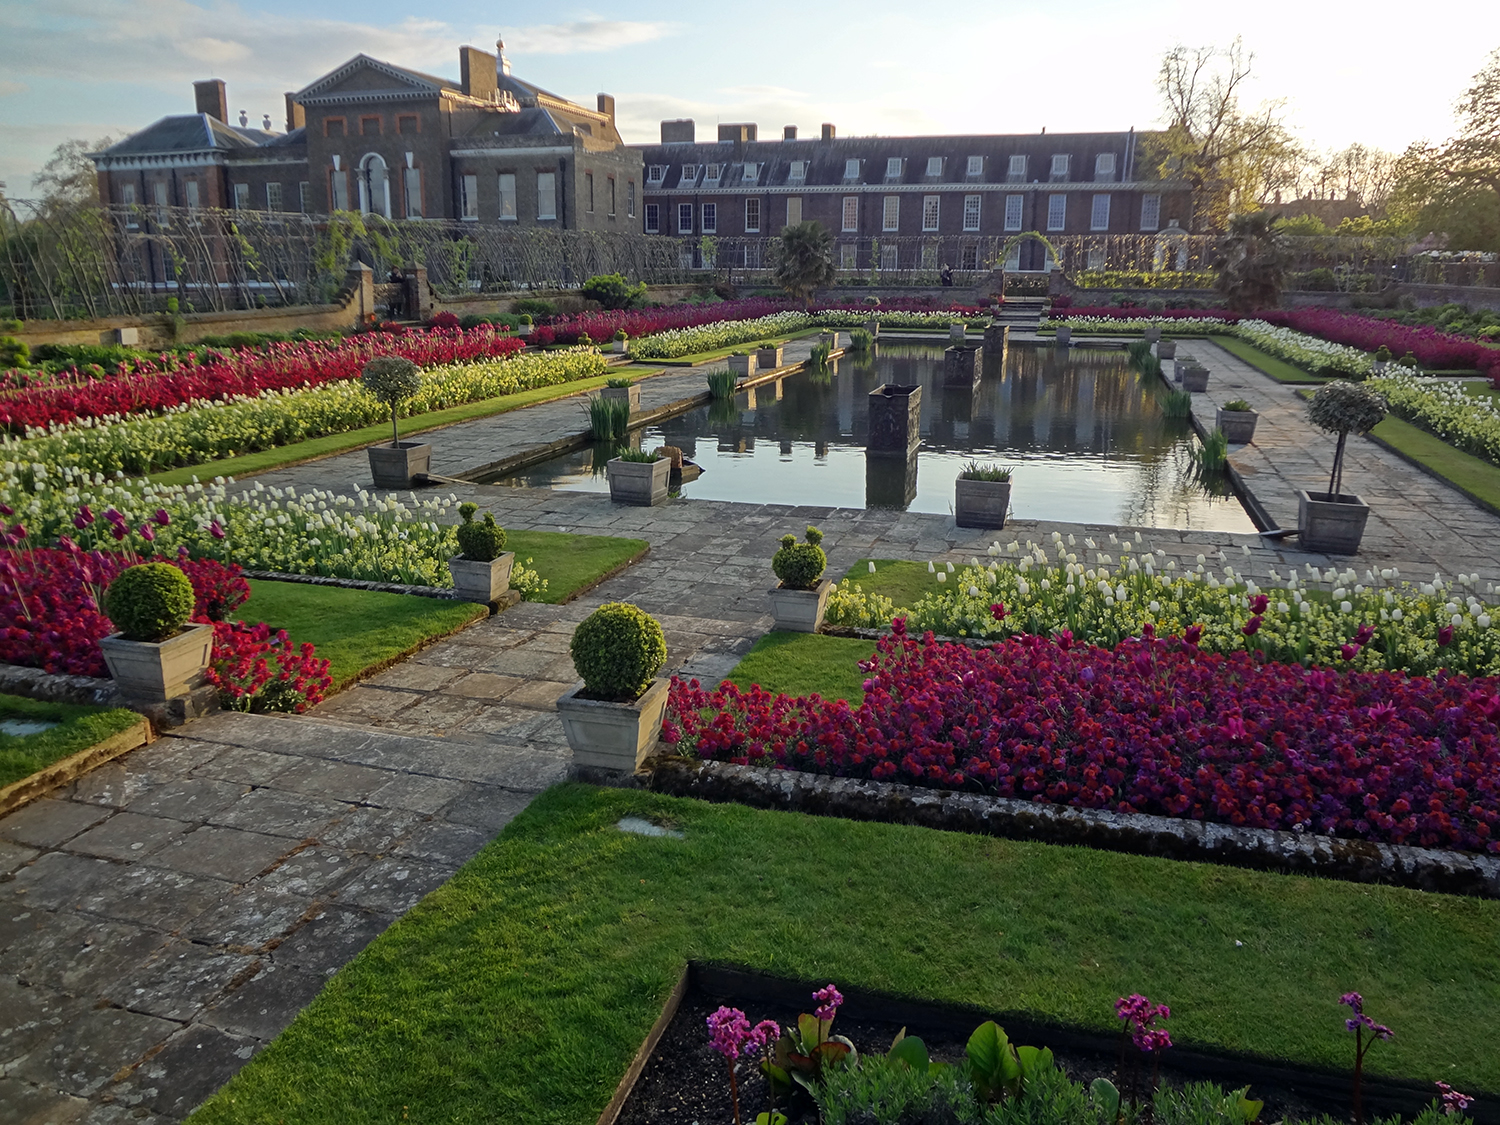 Kensington Palace, London, England